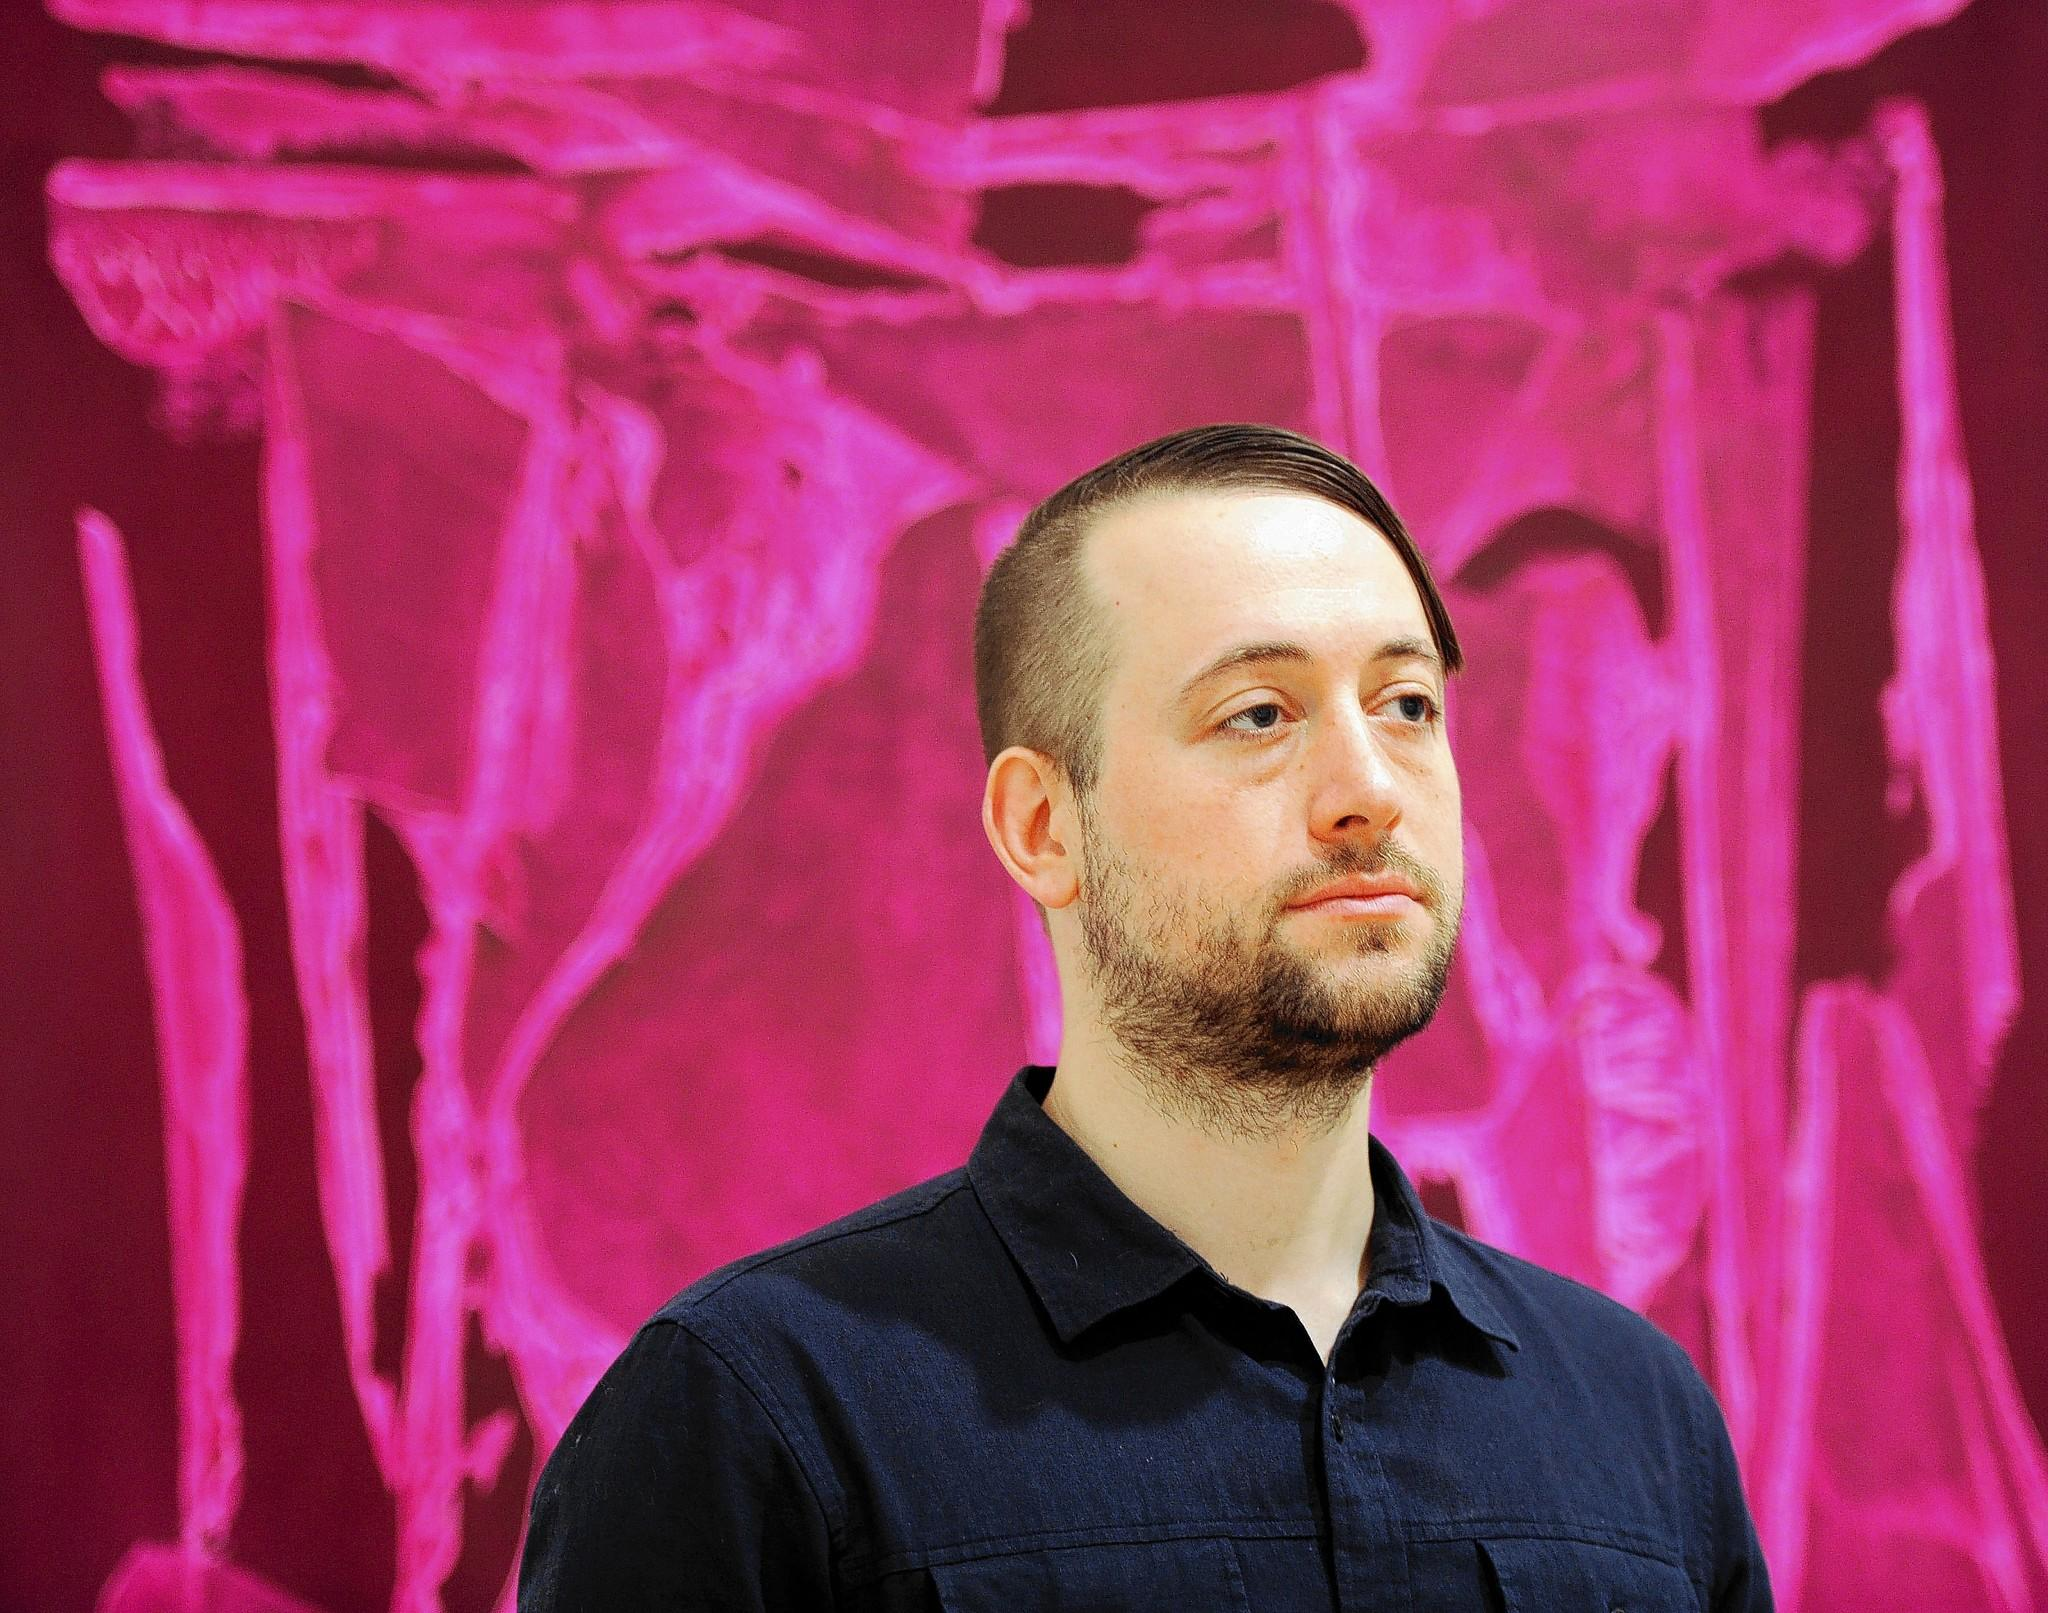 Seth Adelsberger, a local artist, has several pieces on exhibit at the Baltimore Museum of Art. Behind him is Submersion Painting, acrylic and gesso on canvas mounted to oak panel.